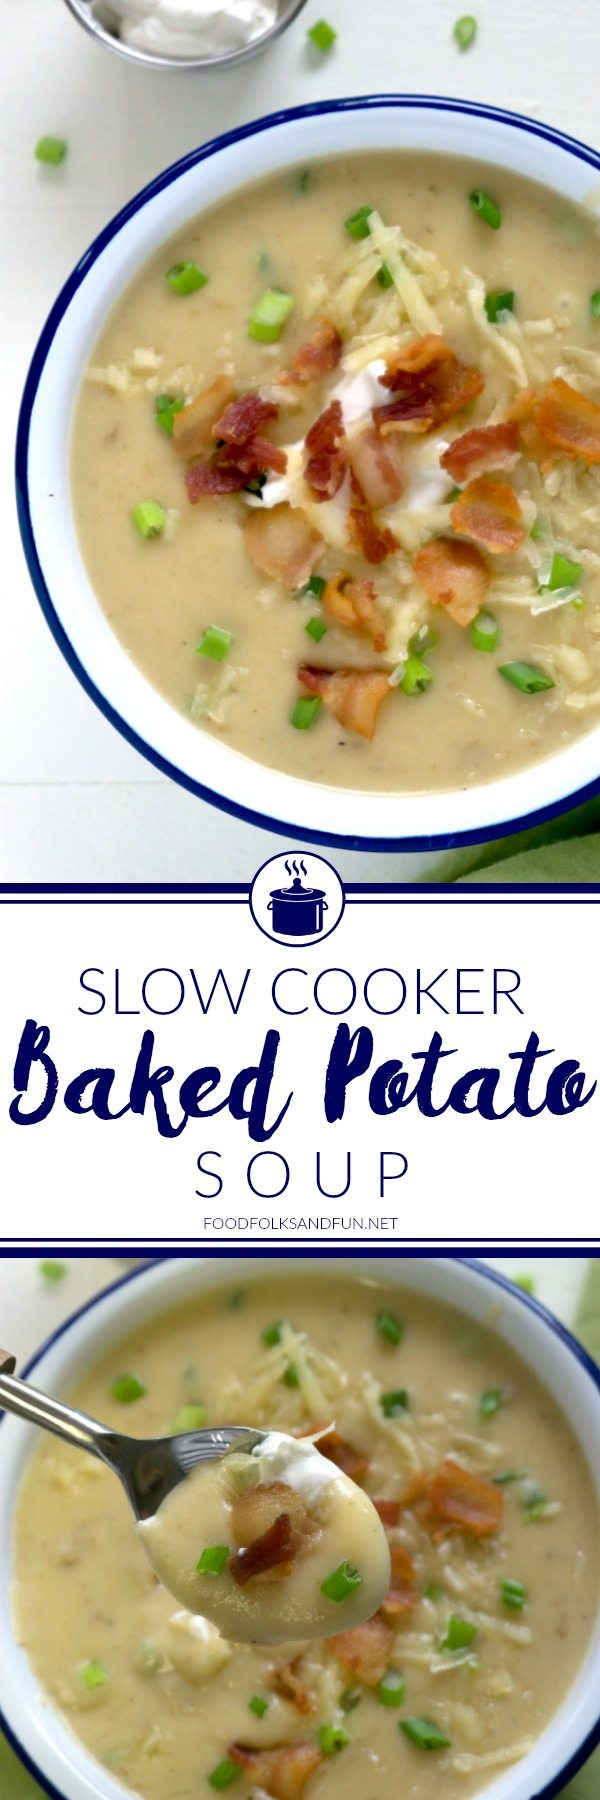 A collage of Slow Cooker Baked Potato Soup with text overlay for Pinterest